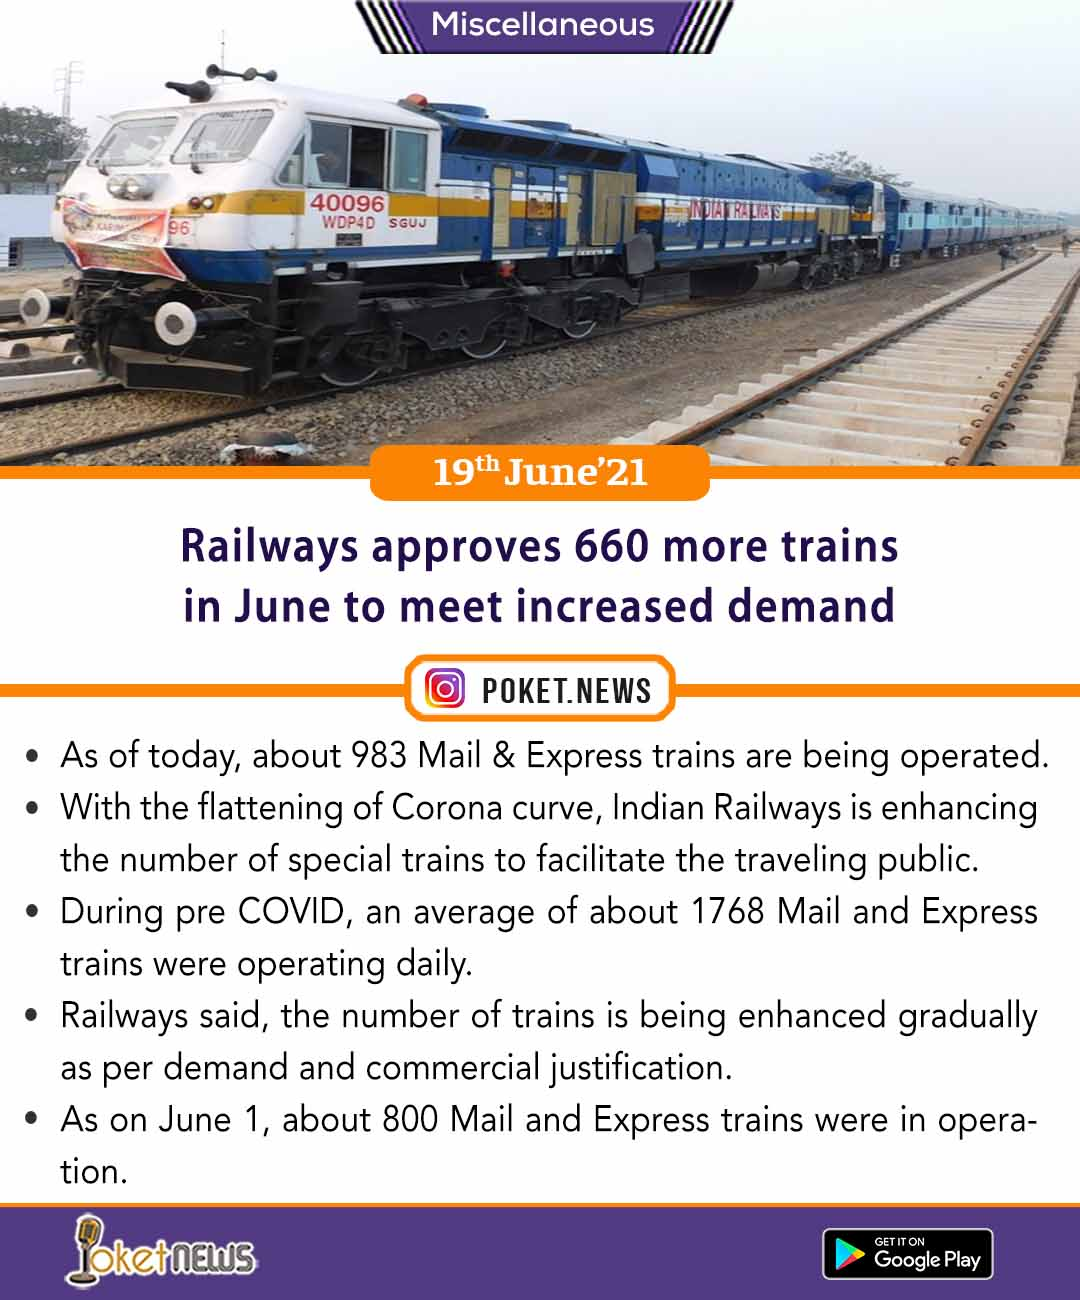 Railways approves 660 more trains in June to meet increased demand